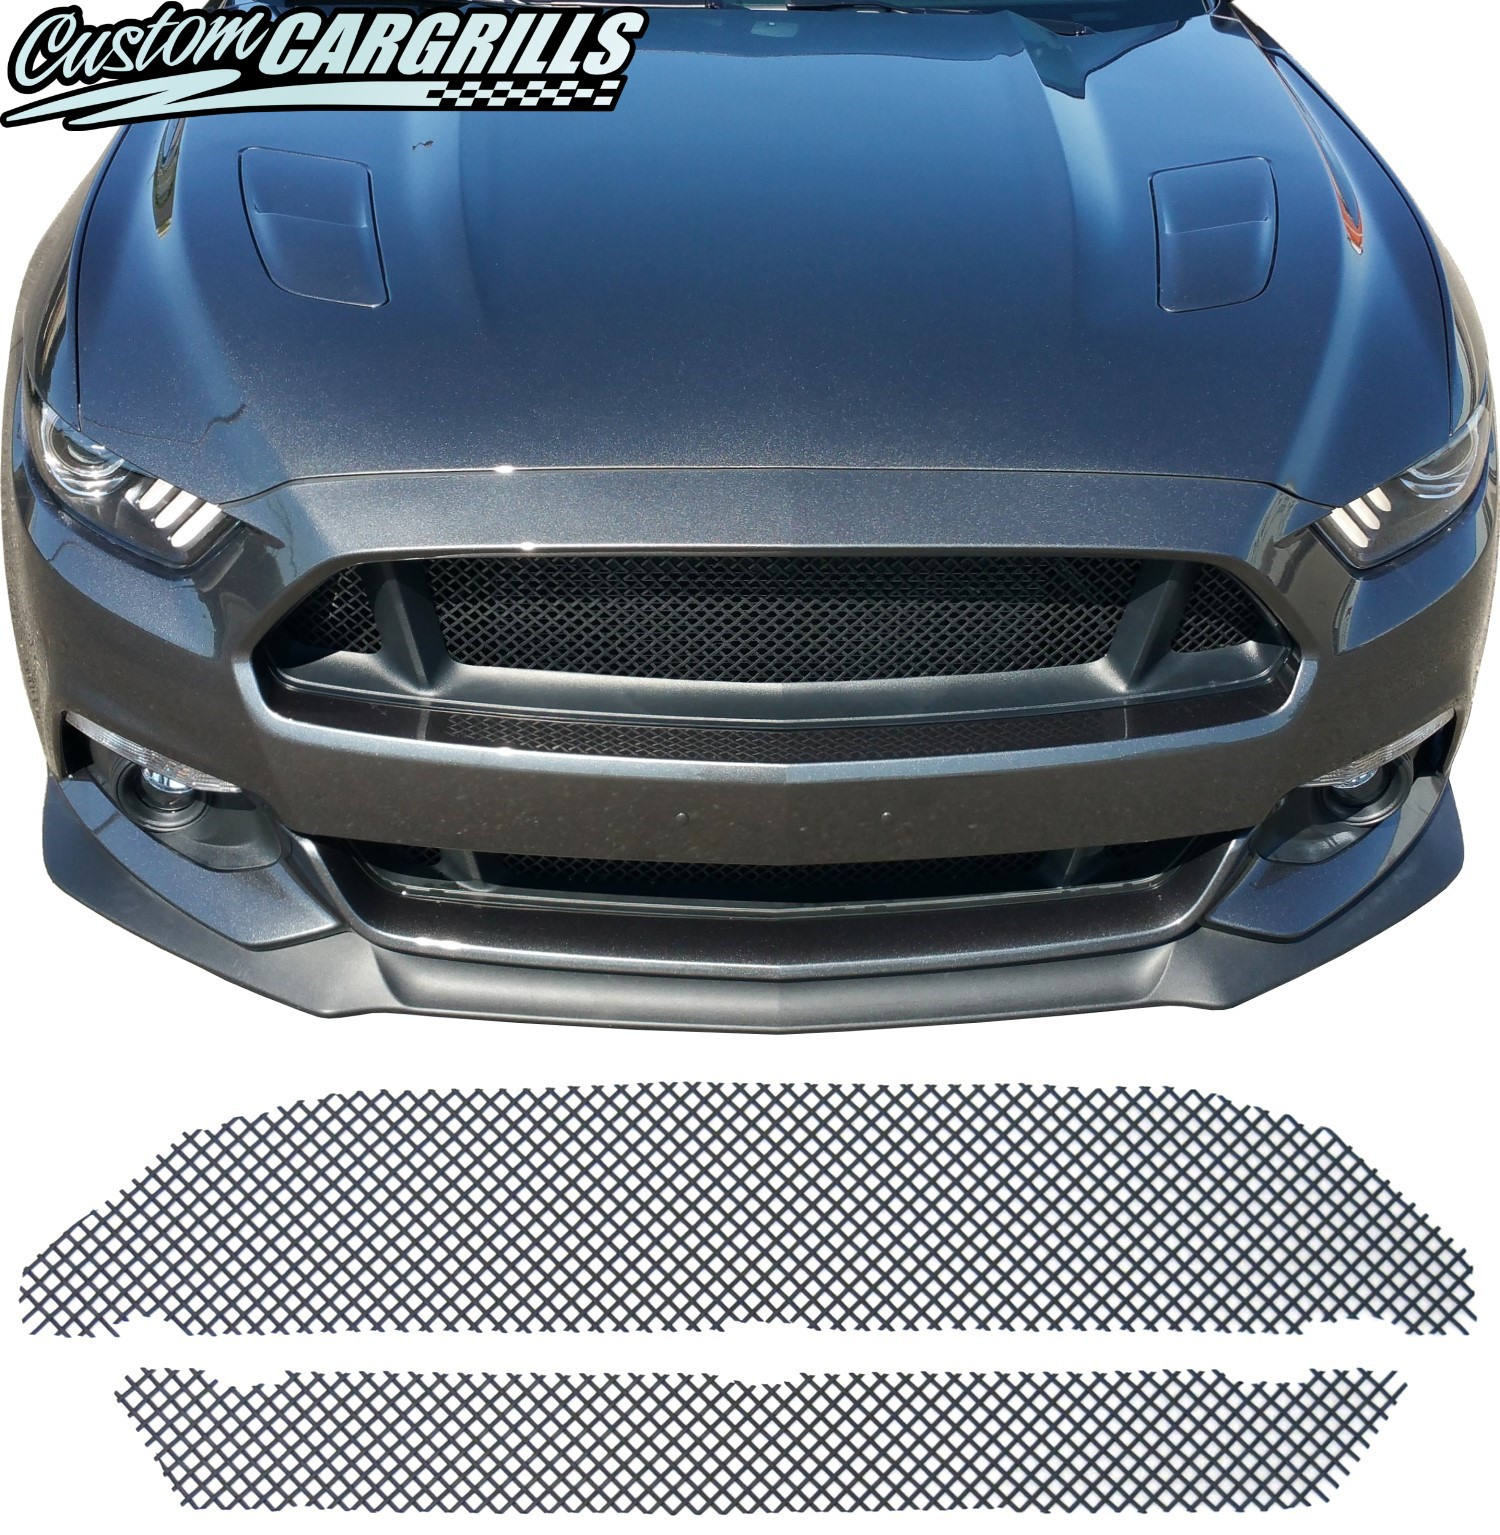 2015 Mustang Gt Pictures Woven Mesh Grill Kit For 2015 2017 Ford Mustang Gt